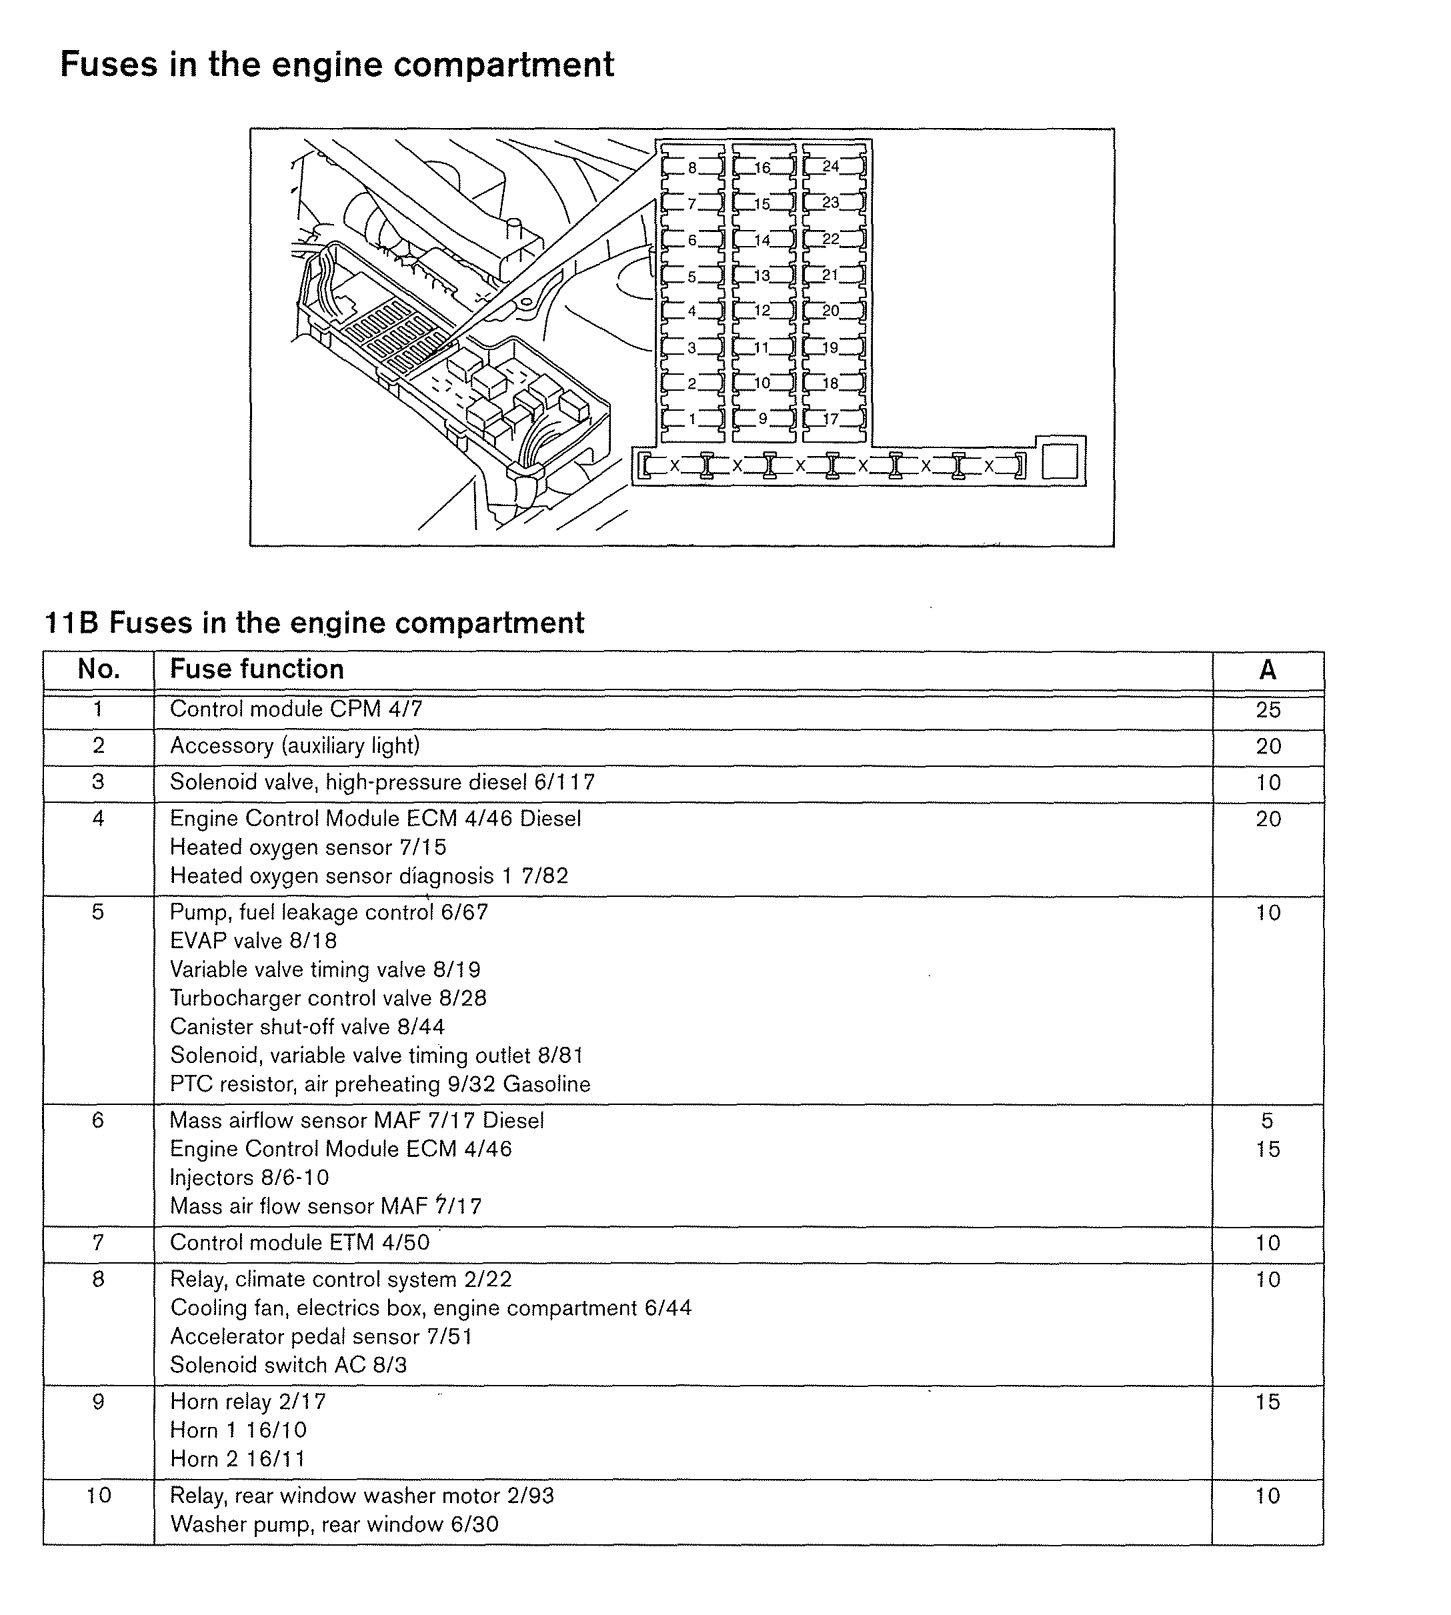 Volvo C70 Engine Compartment Fuse Box Diagram - Wiring Diagram Replace  bell-classroom - bell-classroom.miramontiseo.it | Volvo C70 Fuse Box Diagram |  | bell-classroom.miramontiseo.it